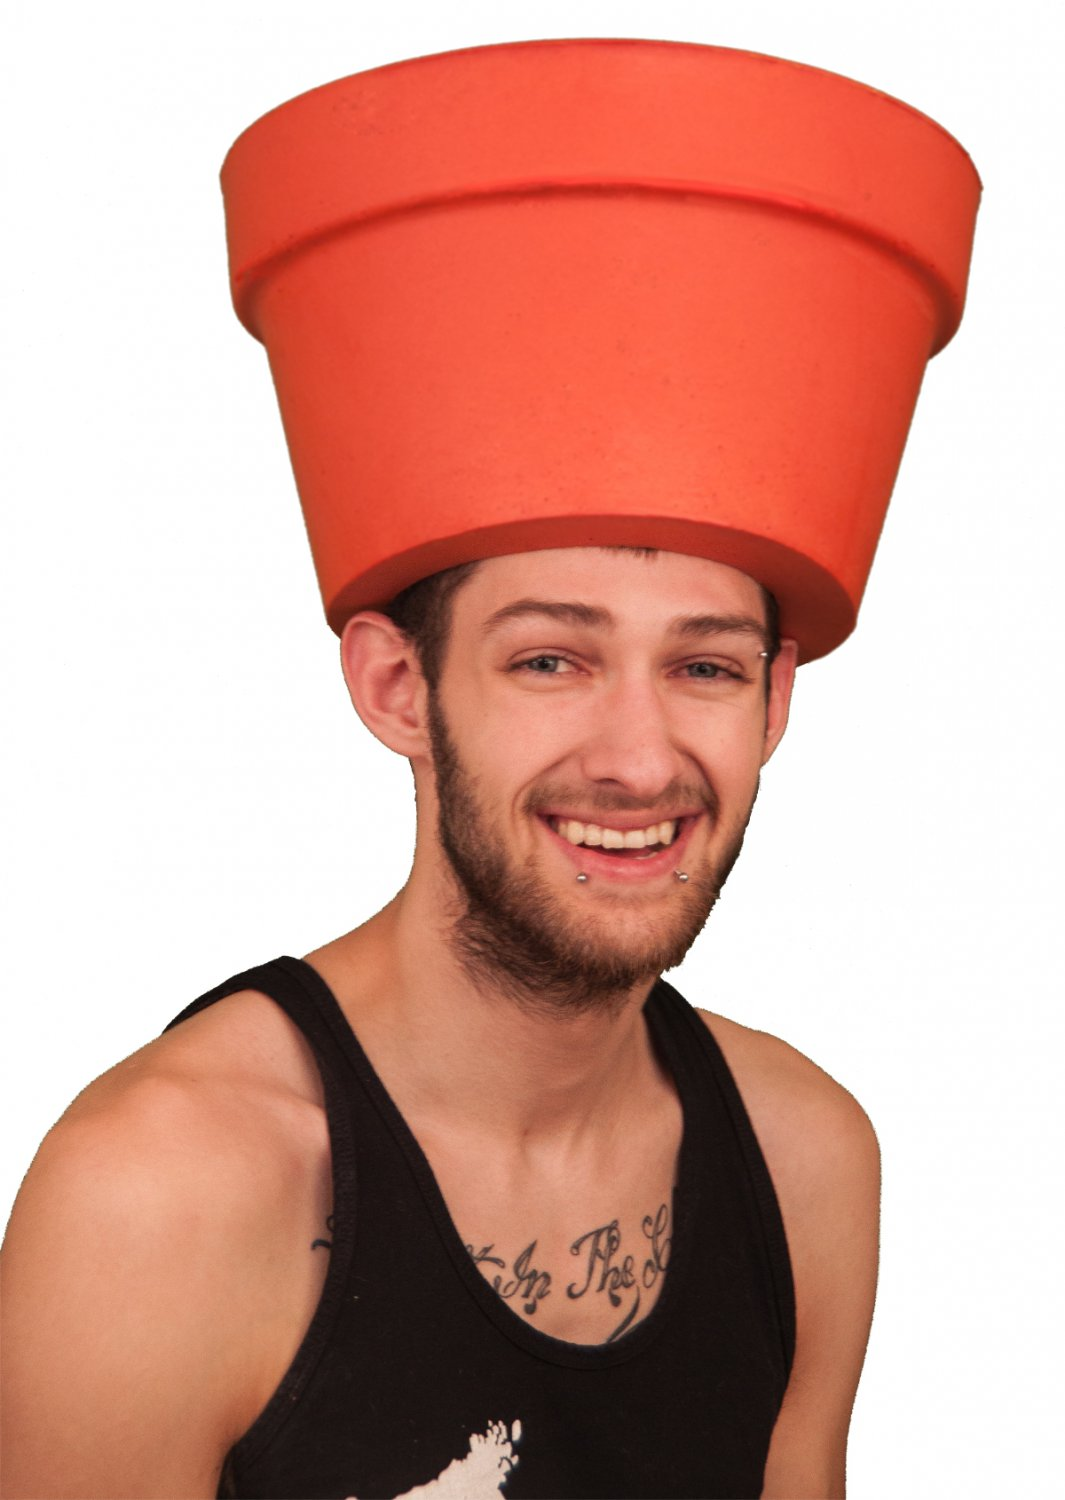 Simple Adult Costume Ideas - Funny Pot Head Hat Costume for Adults